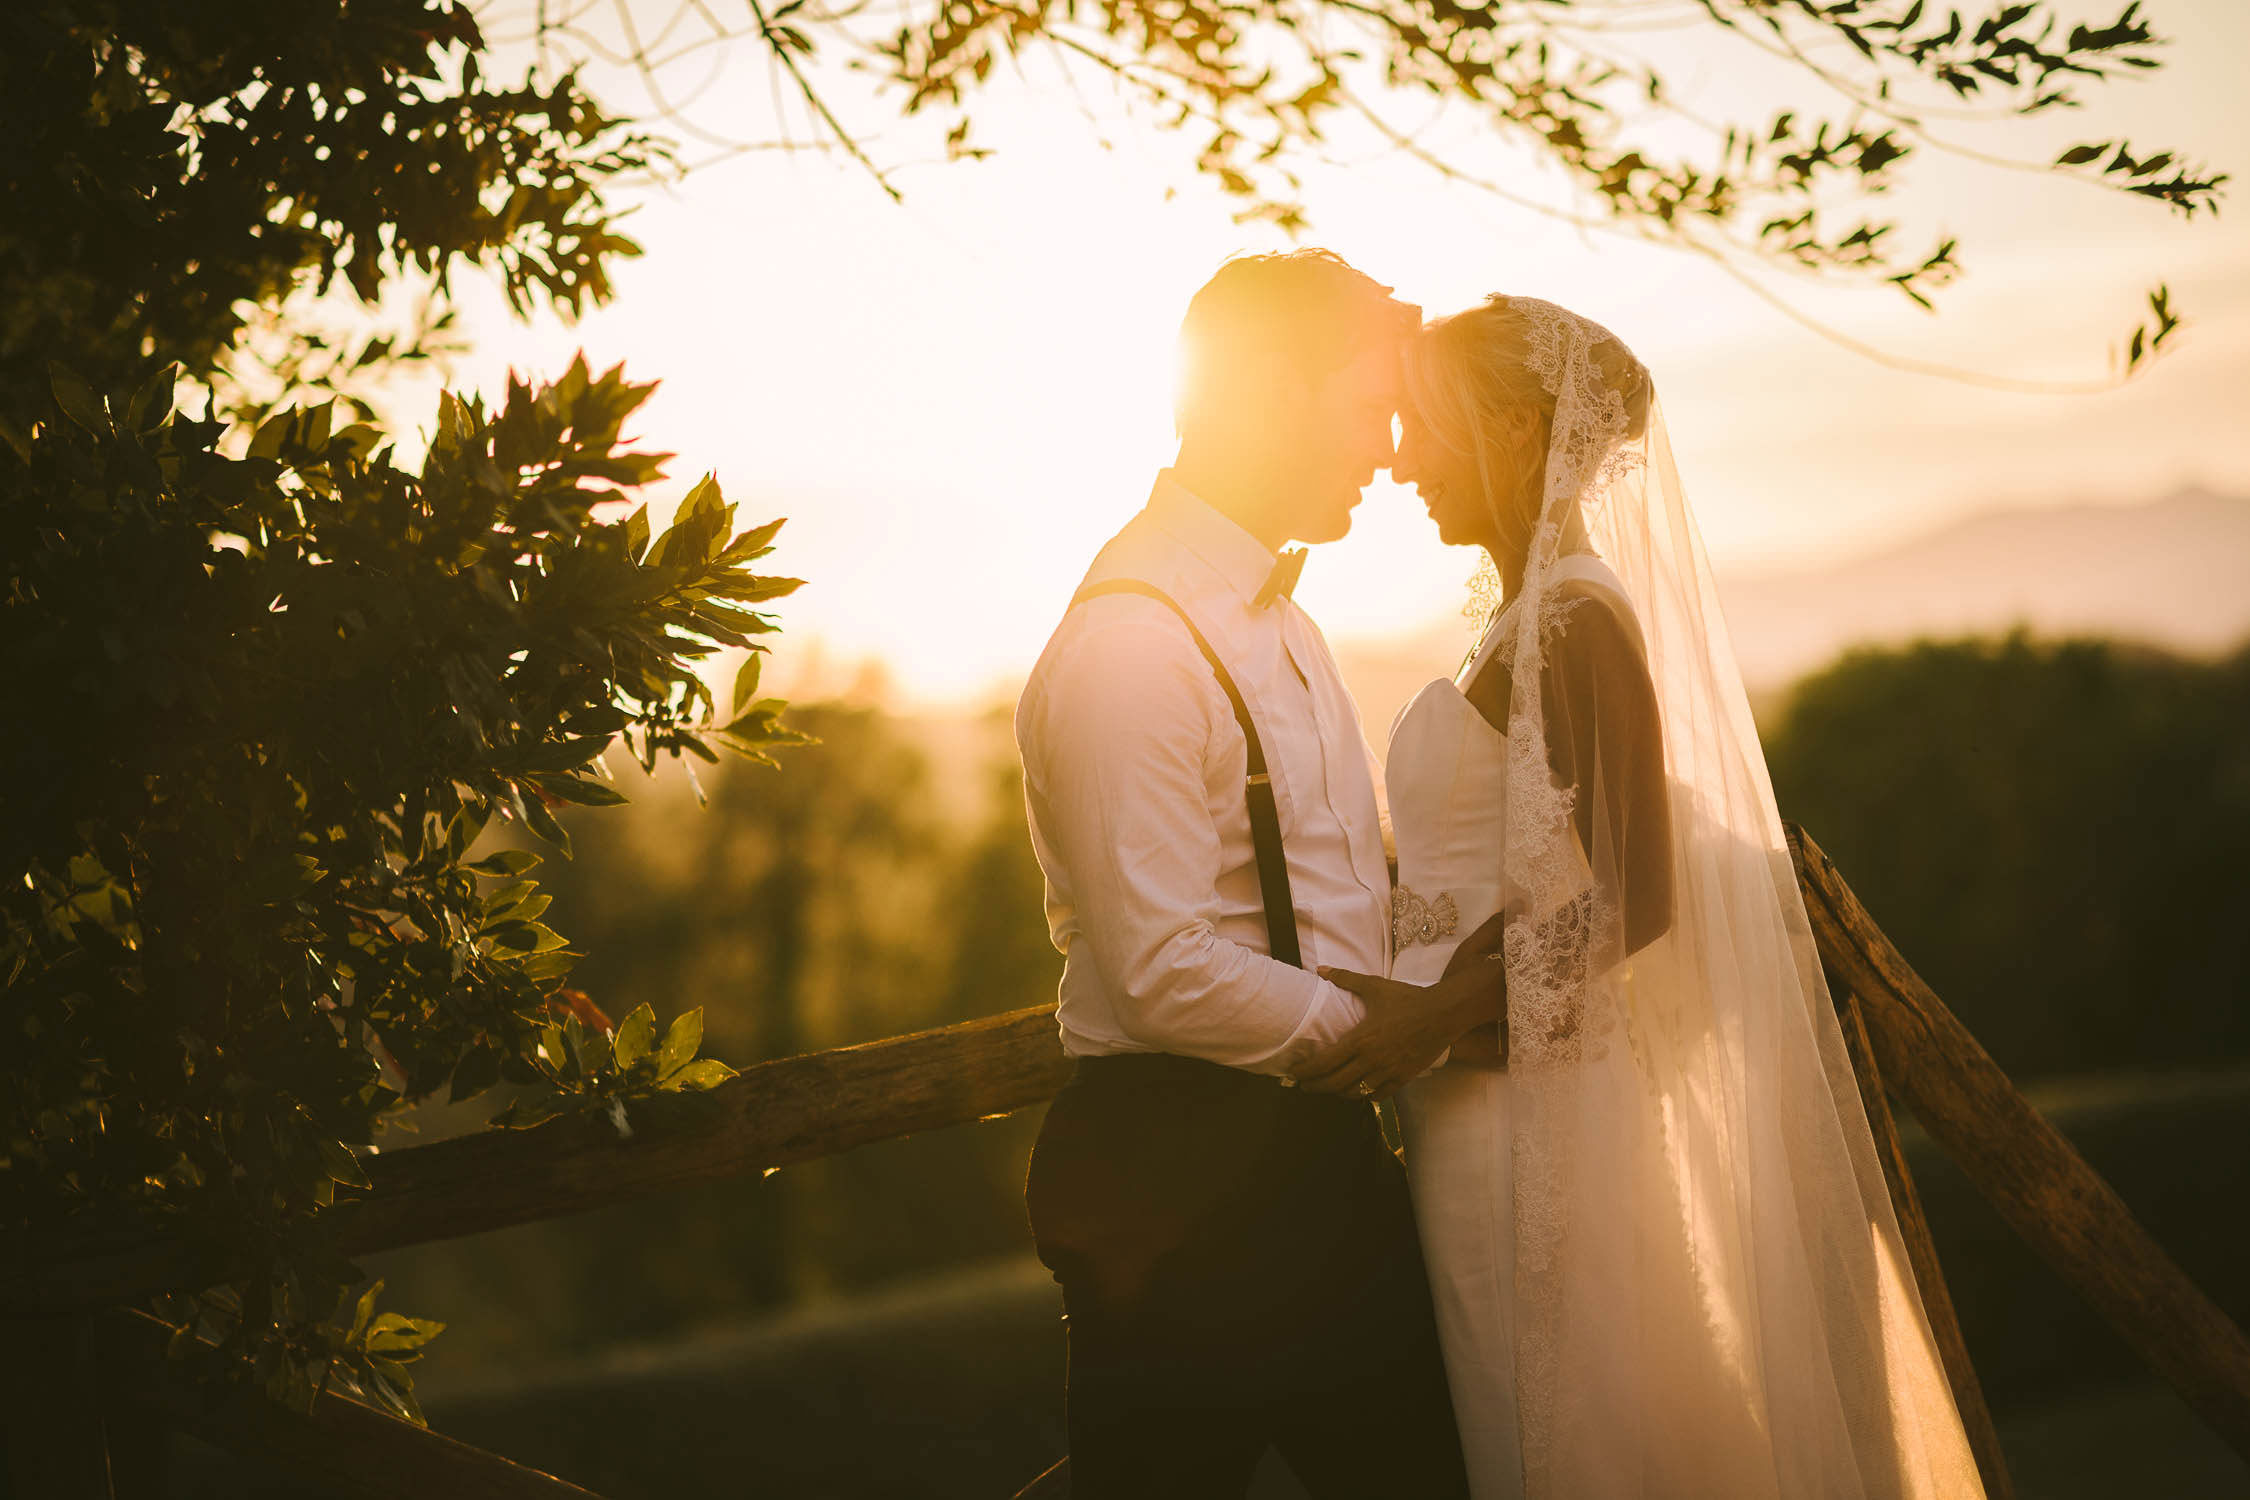 Couple portrait at Borgo di Colleoli during golden hour